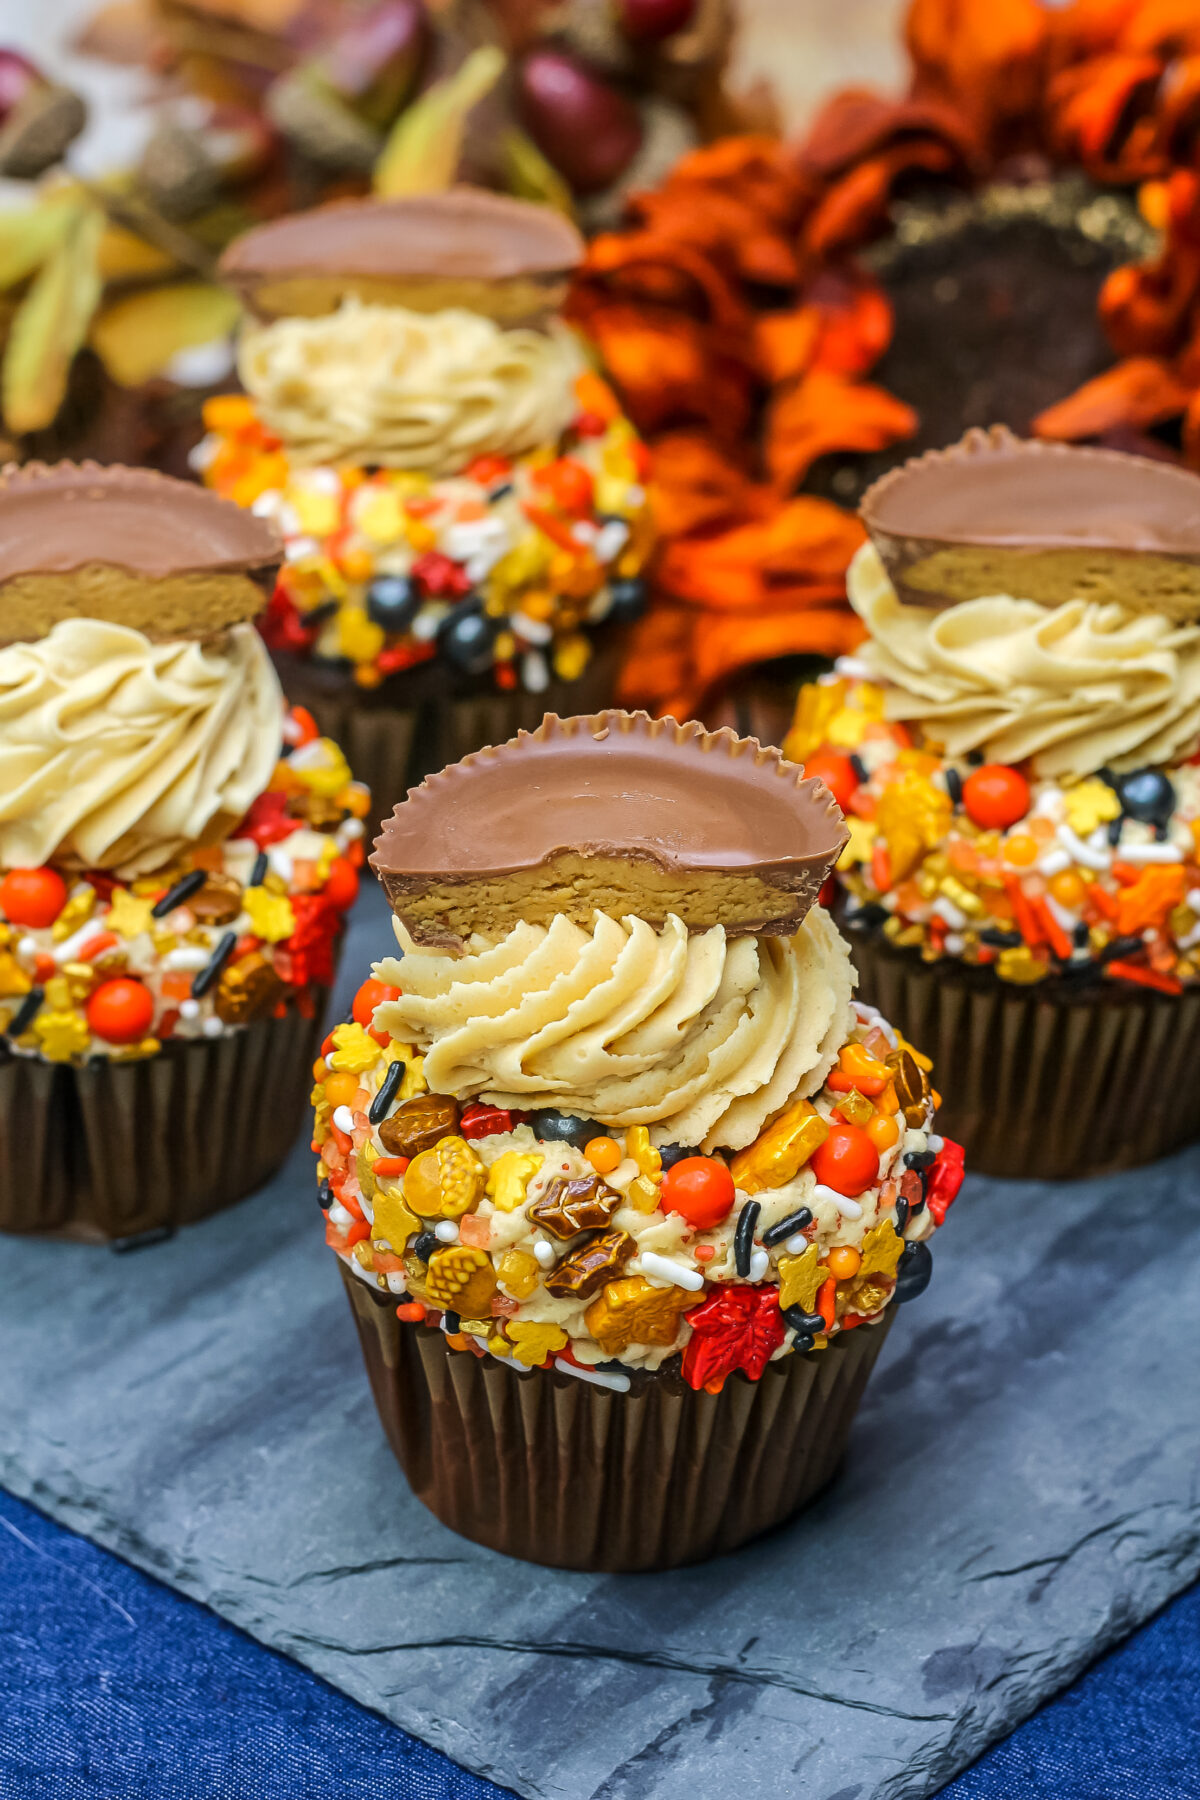 This chocolate cupcakes with peanut butter frosting recipe features a rich chocolate cake, creamy frosting, cute sprinkles and a Reese's cup.